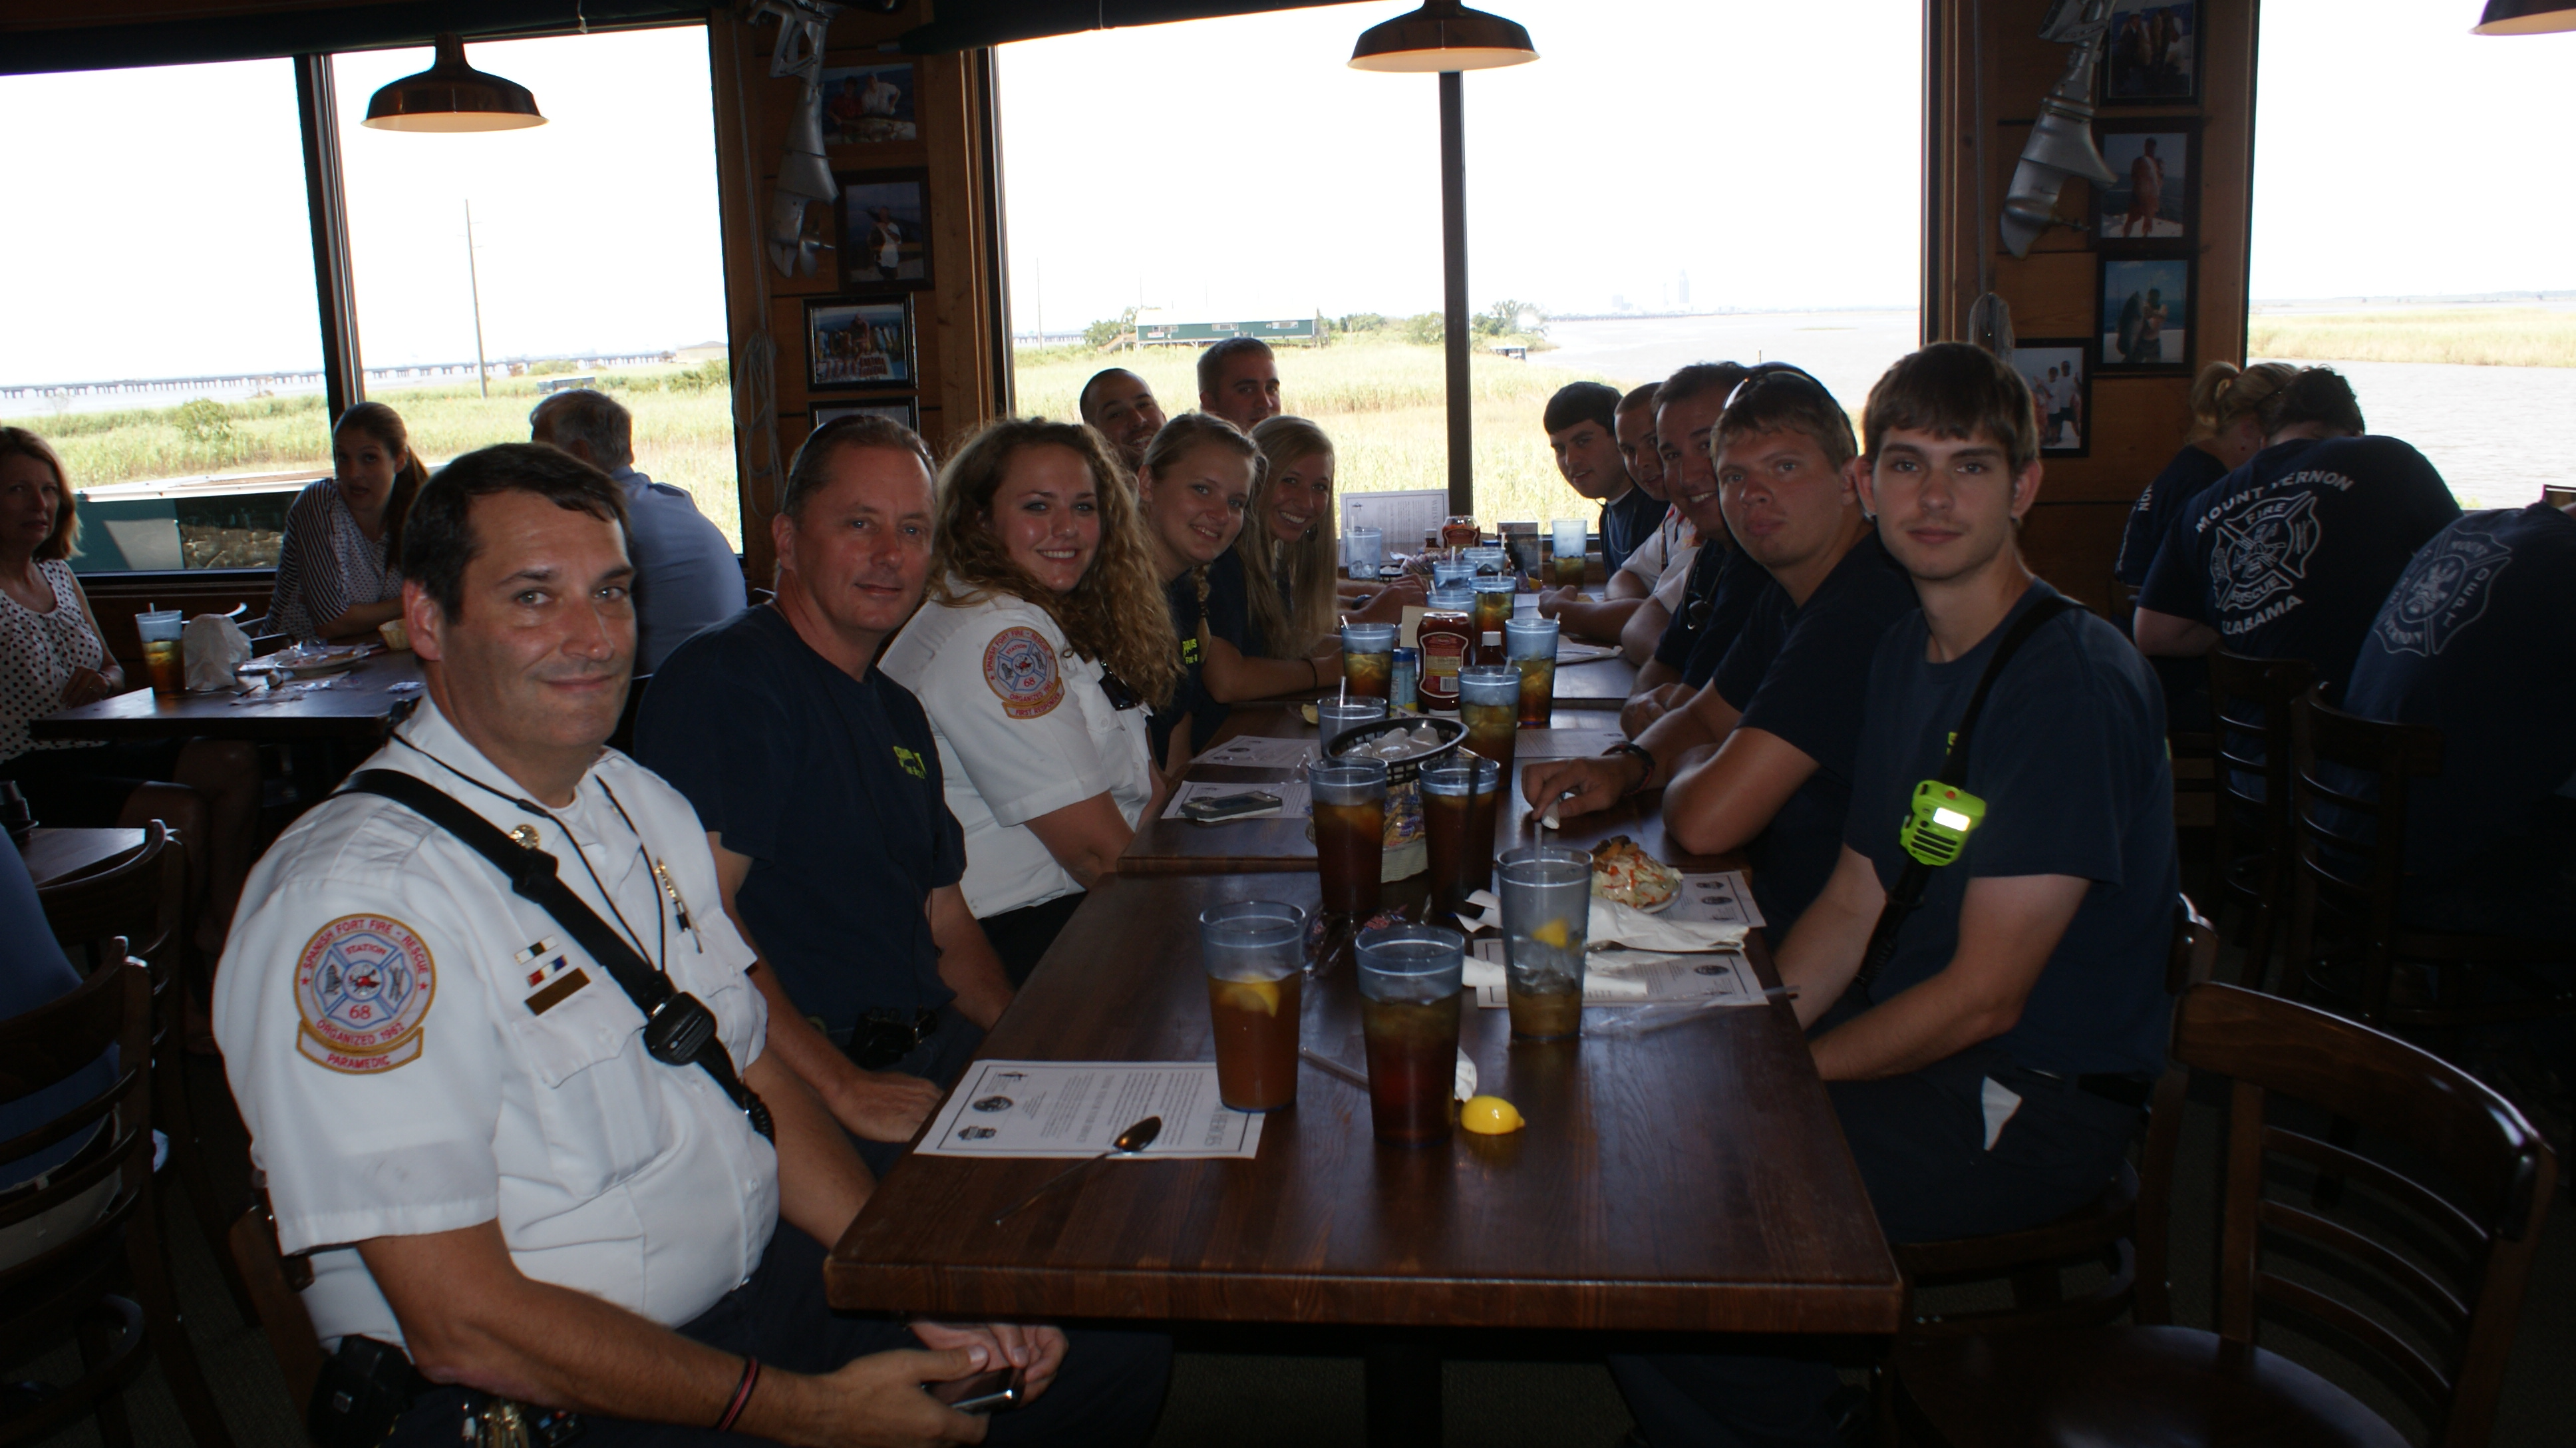 Group of people enjoying Never Forget Lunch at original oyster house